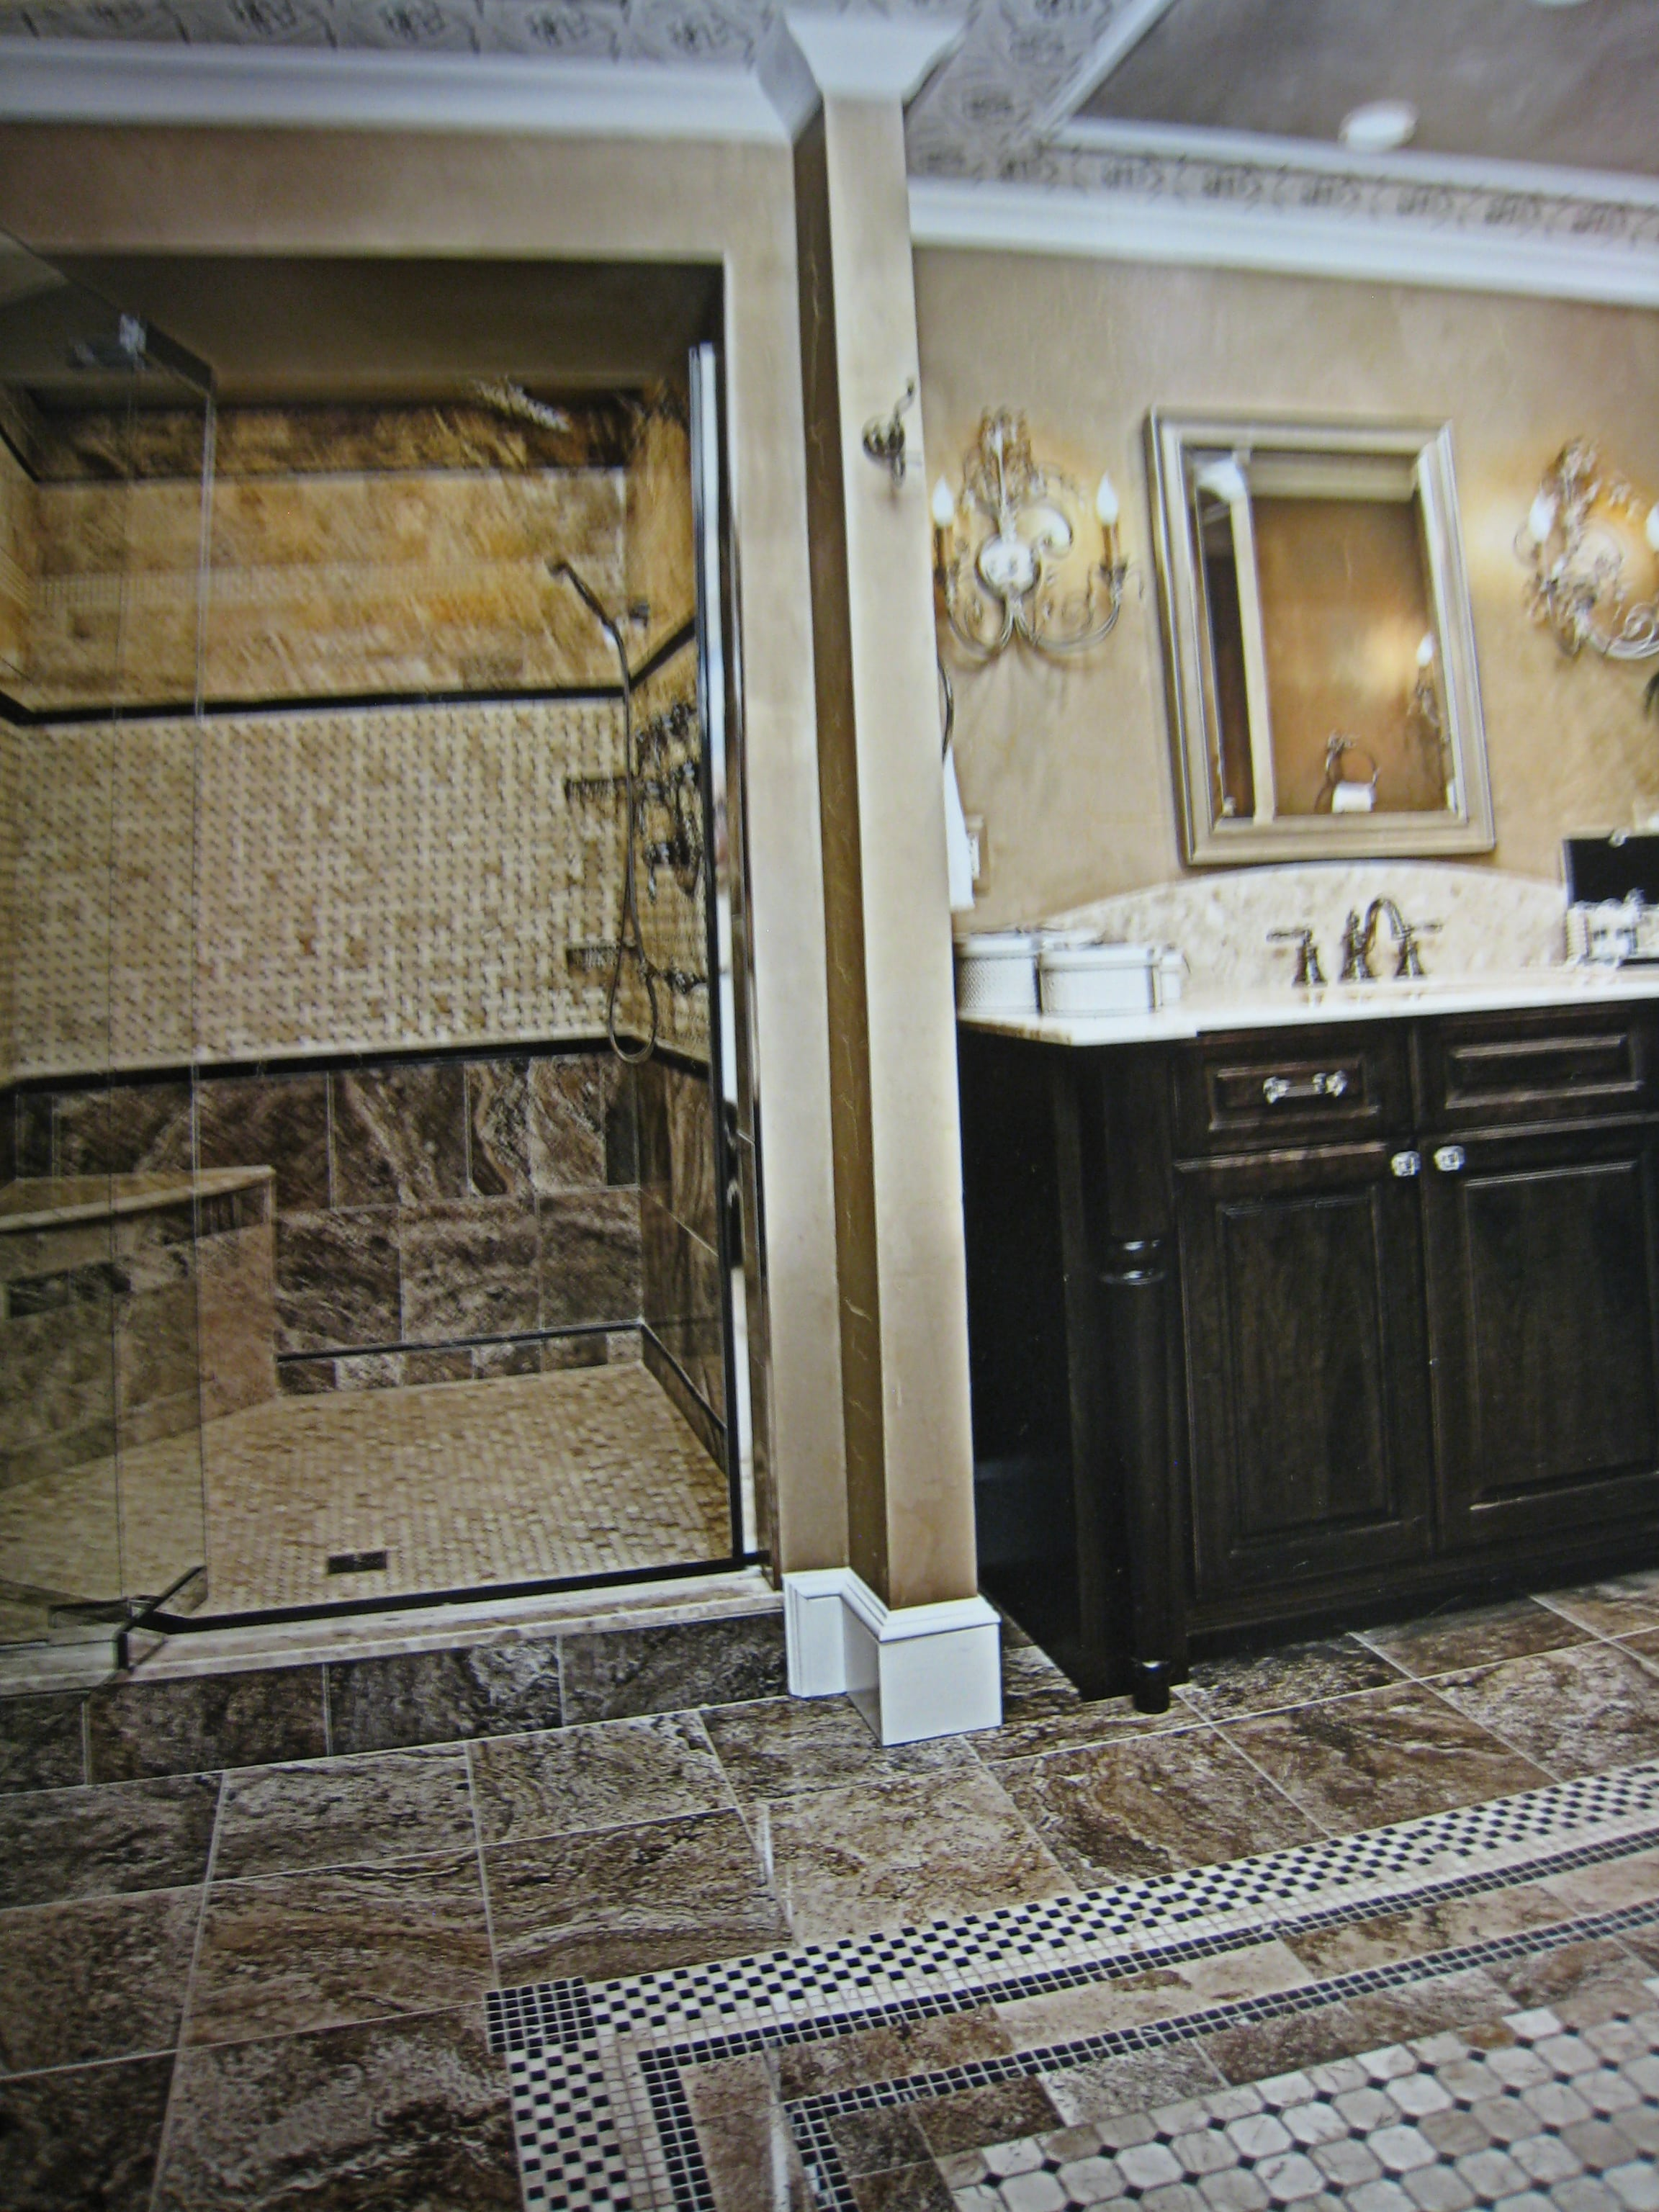 Bathroom Tiles And Cabinet Discounters In Sterling Va